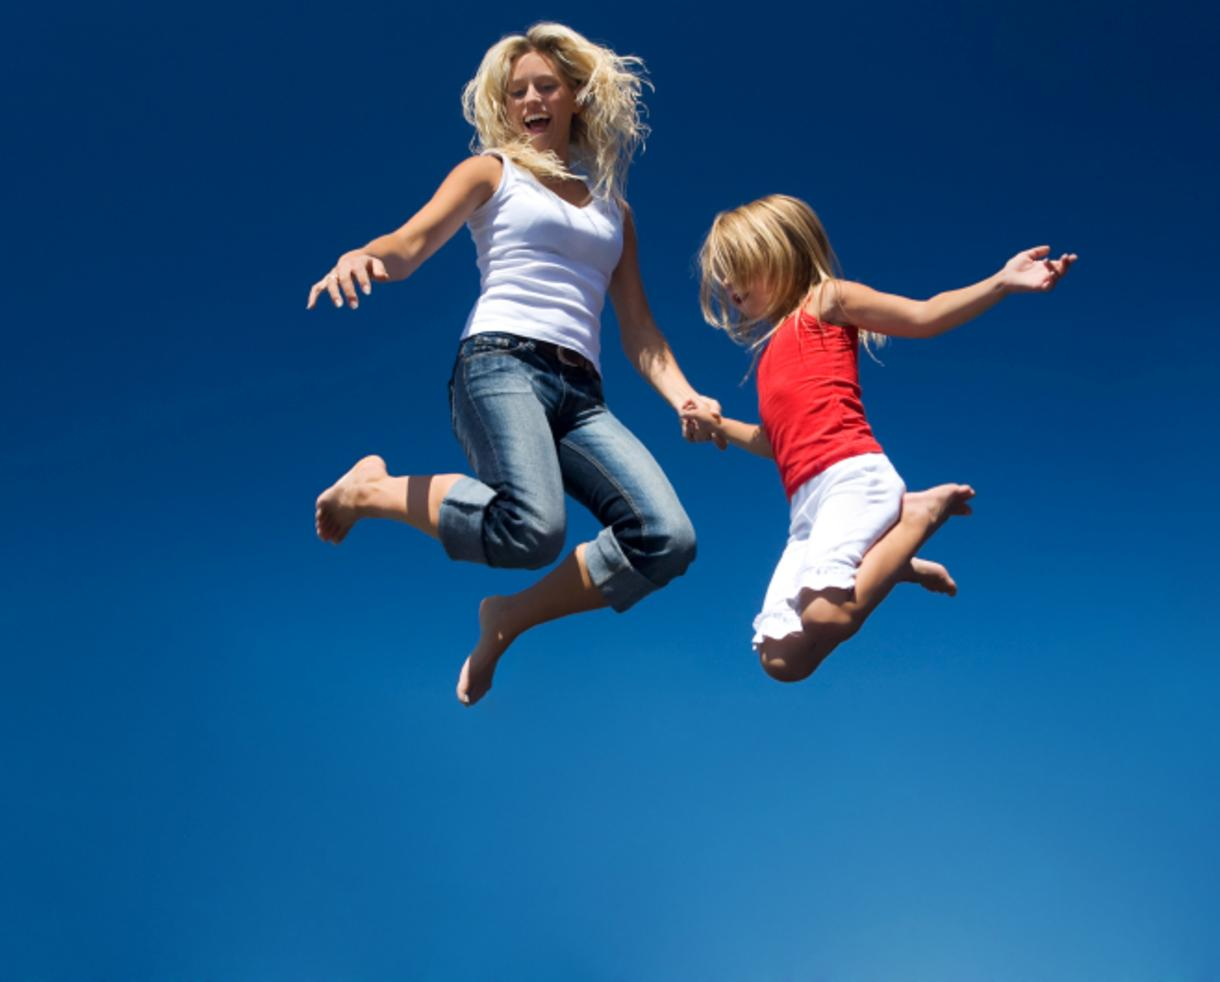 $15 for FIVE Open Gym or Trampoline Pass to MarVaTots 'n Teens - All Ages ($25 value)